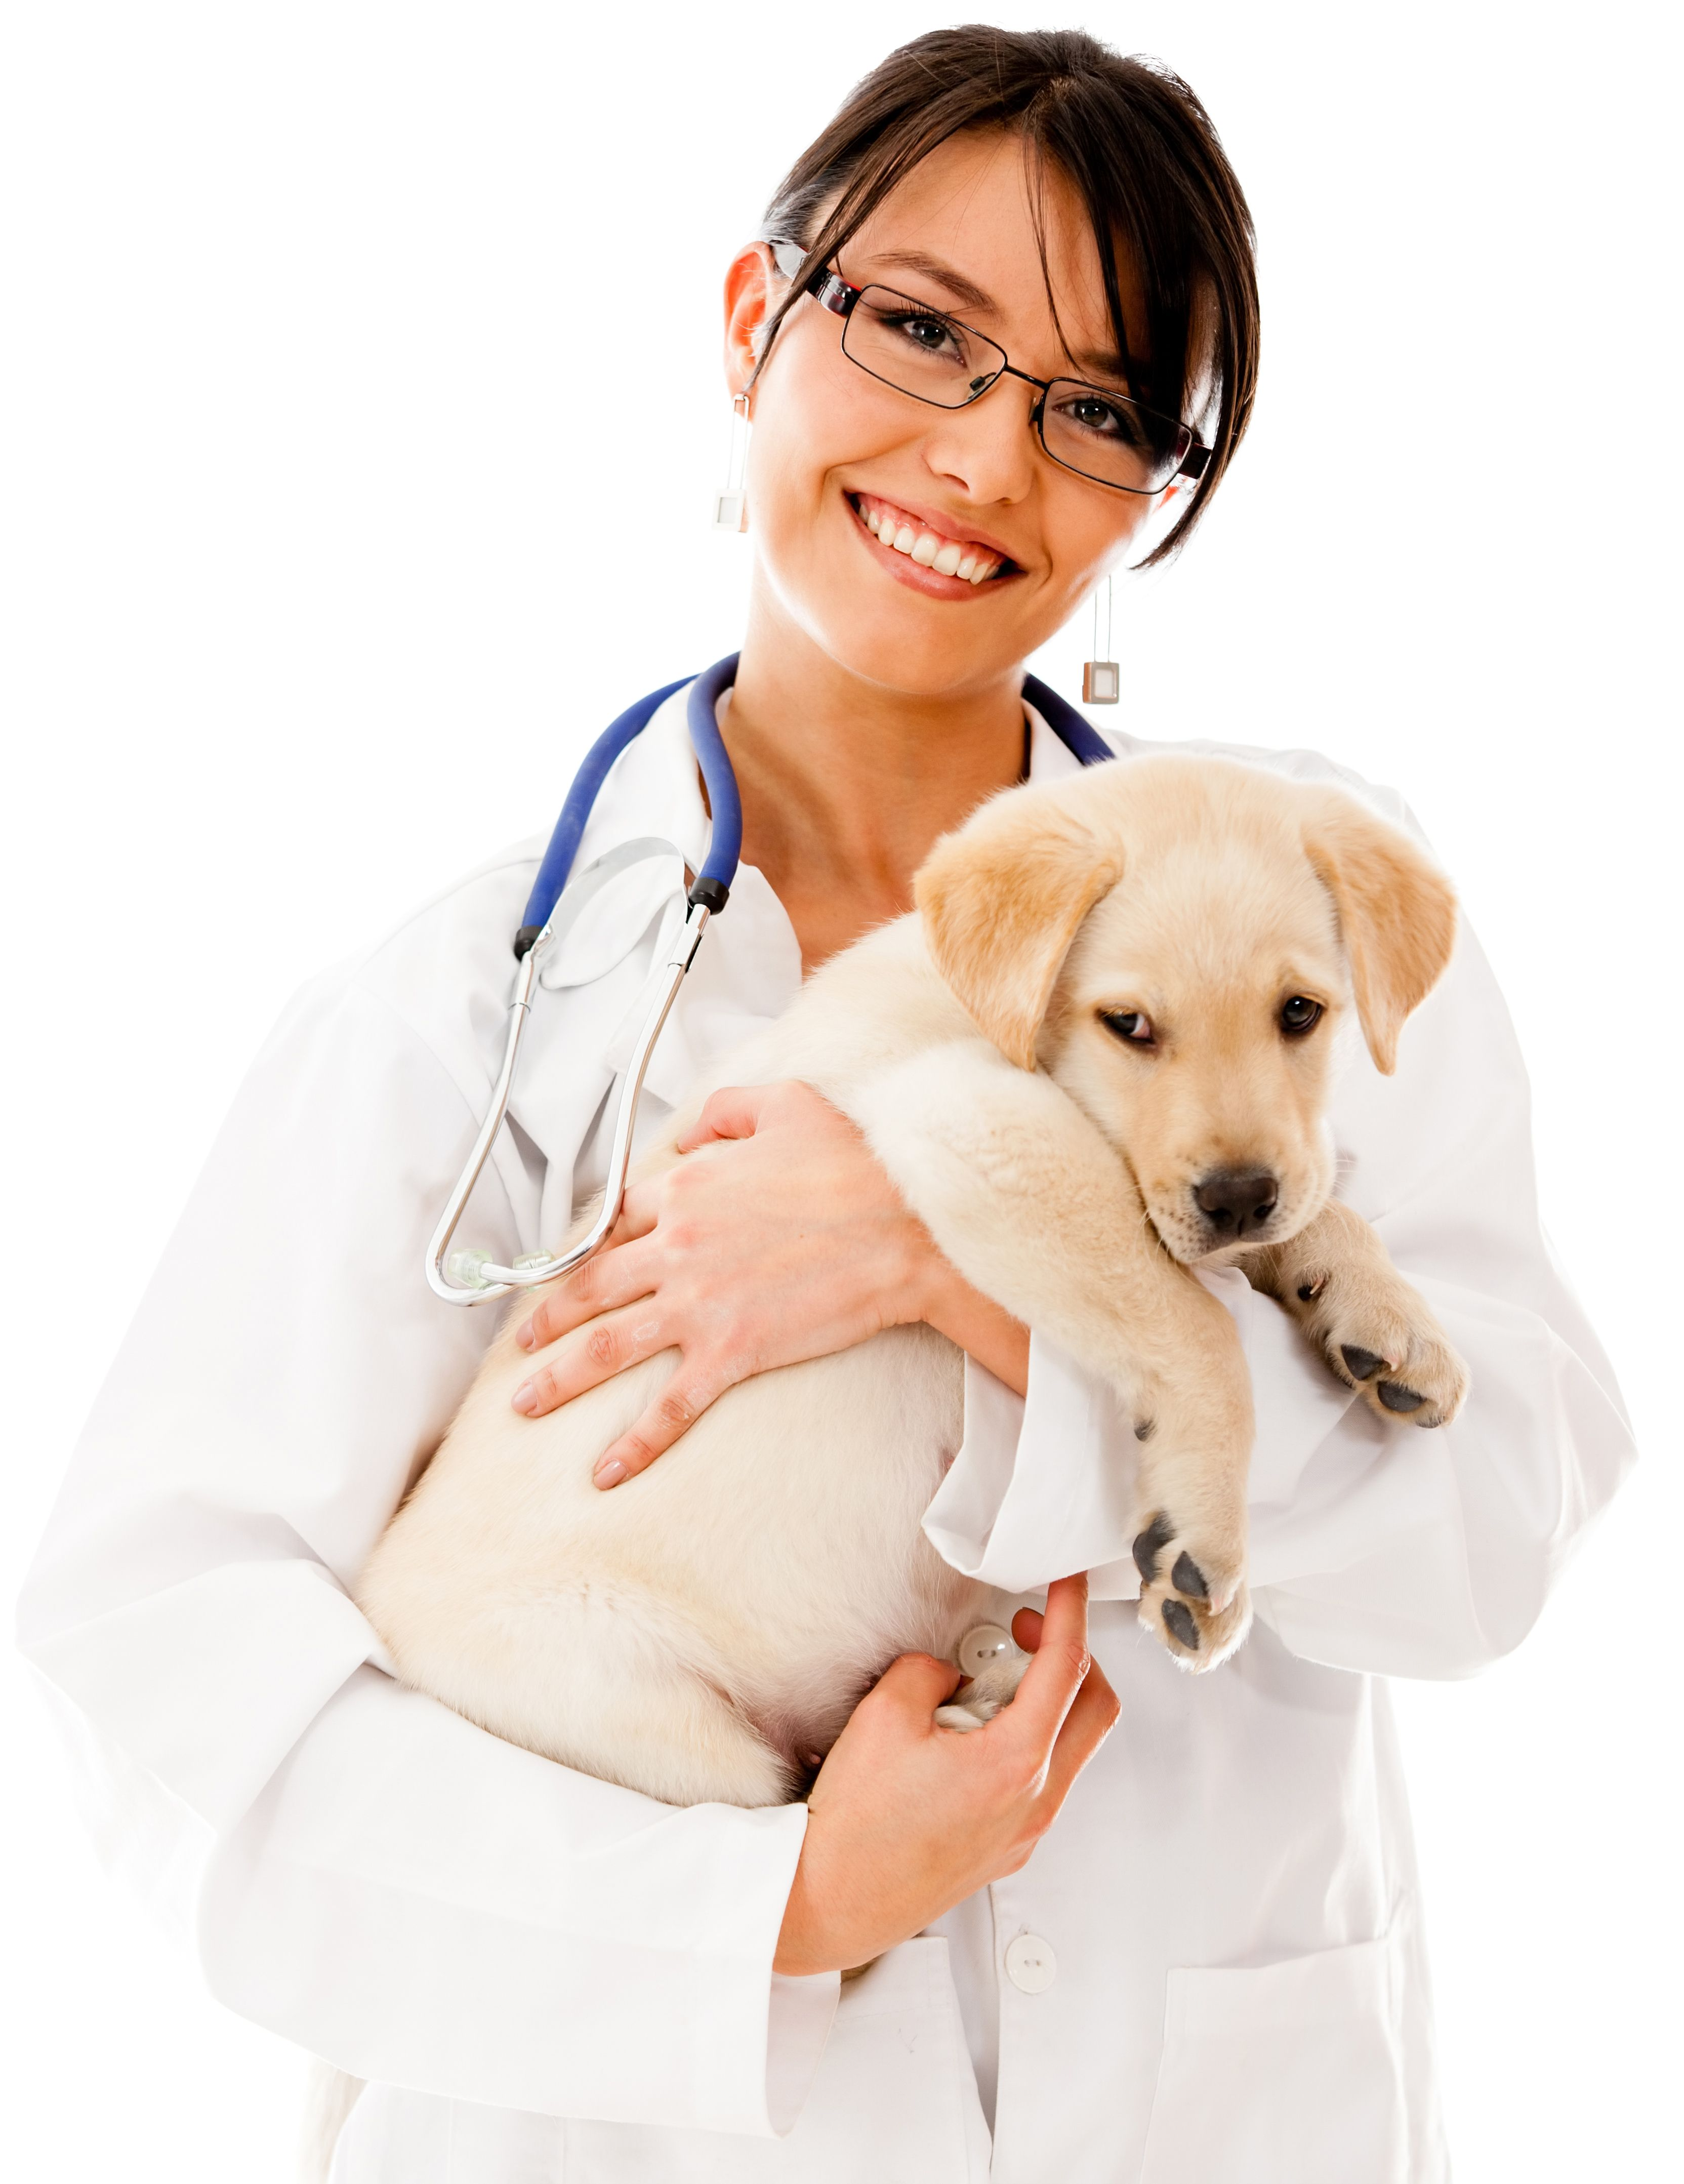 Online Course - Veterinary Assistant | Cute Veterinary